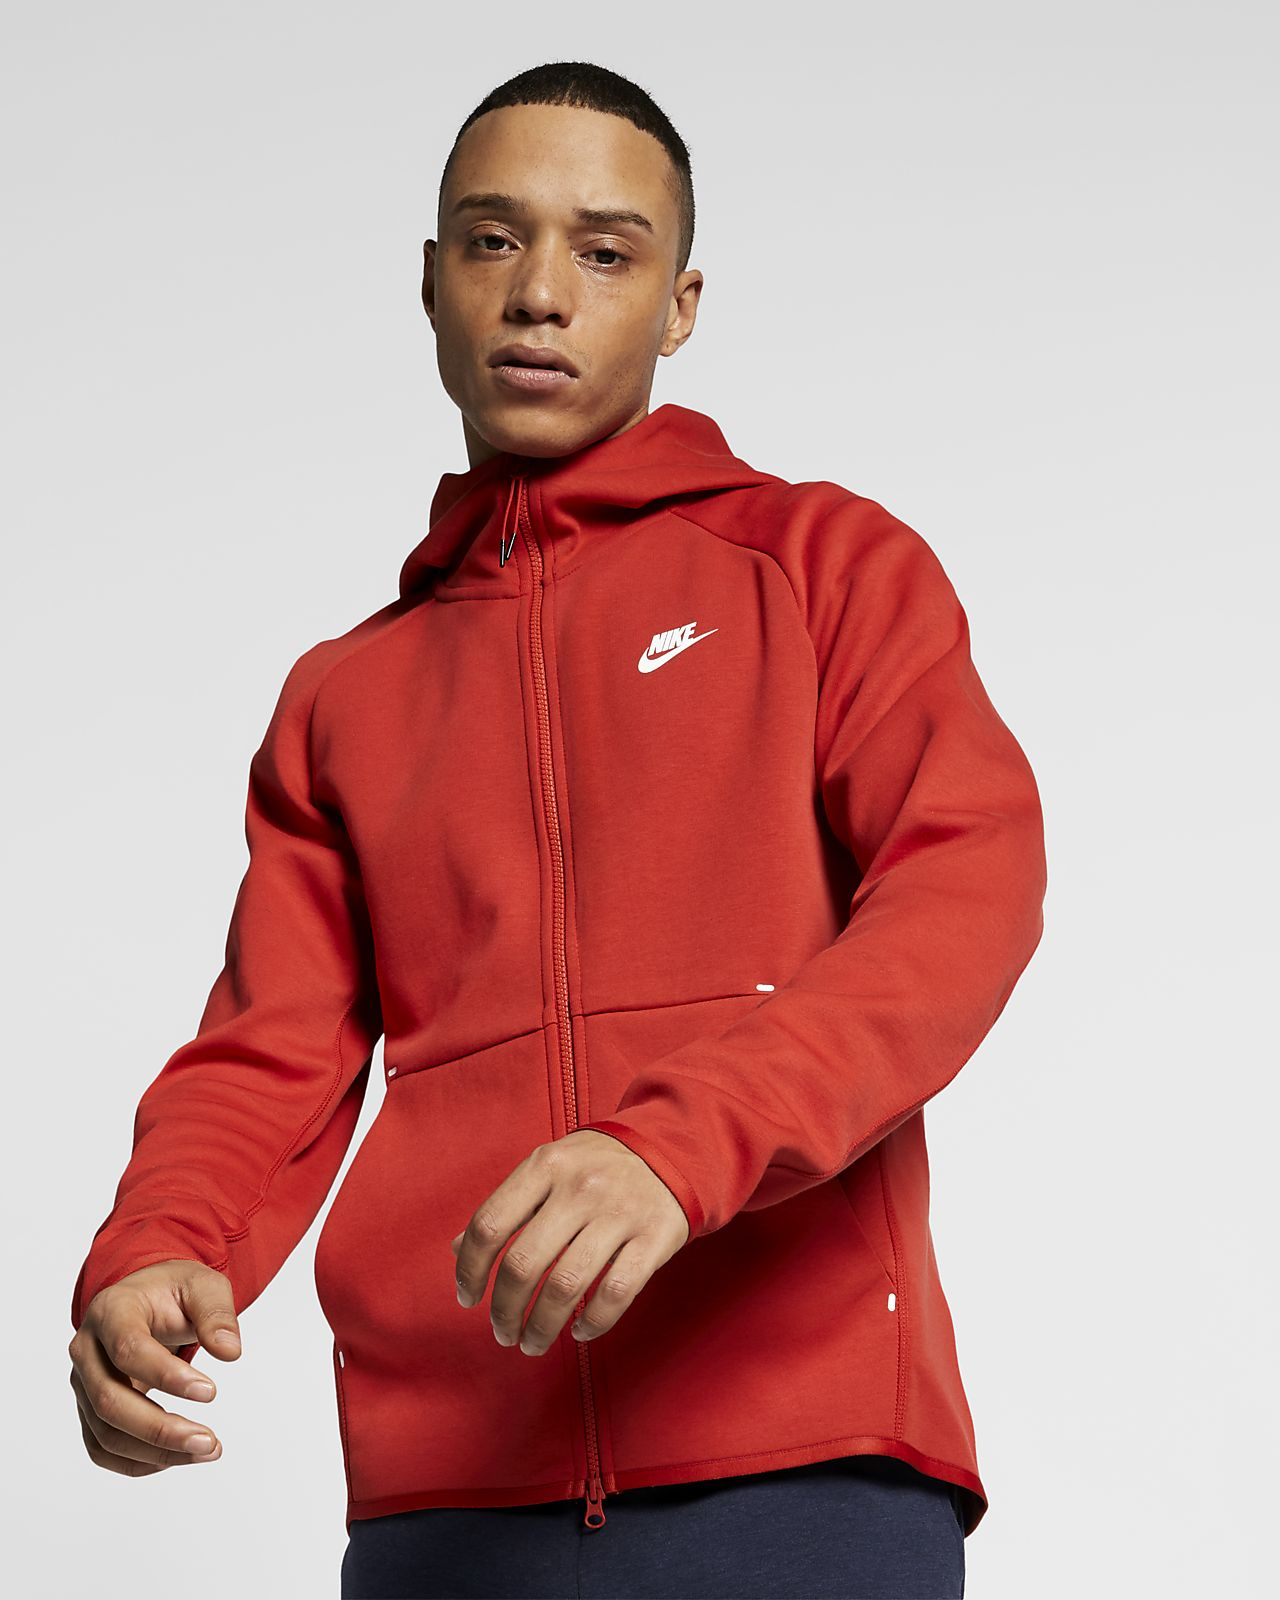 faf5523229 Nike Sportswear Tech Fleece Men s Full-Zip Hoodie. Nike.com